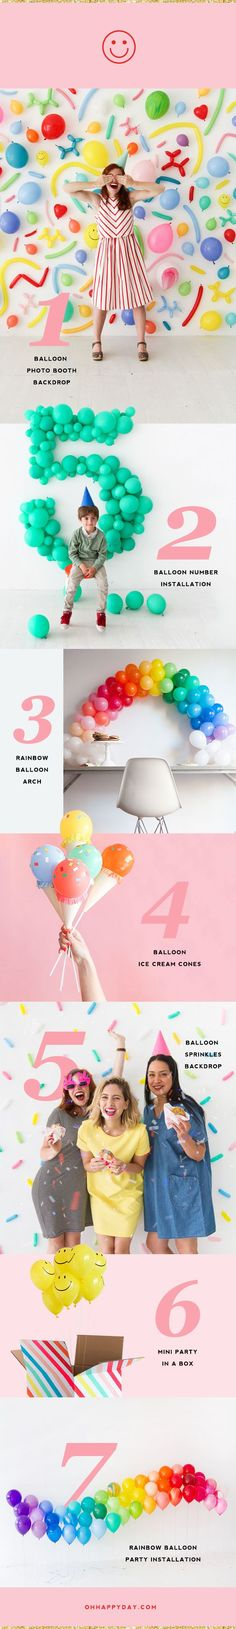 7 Awesome Balloon Projects